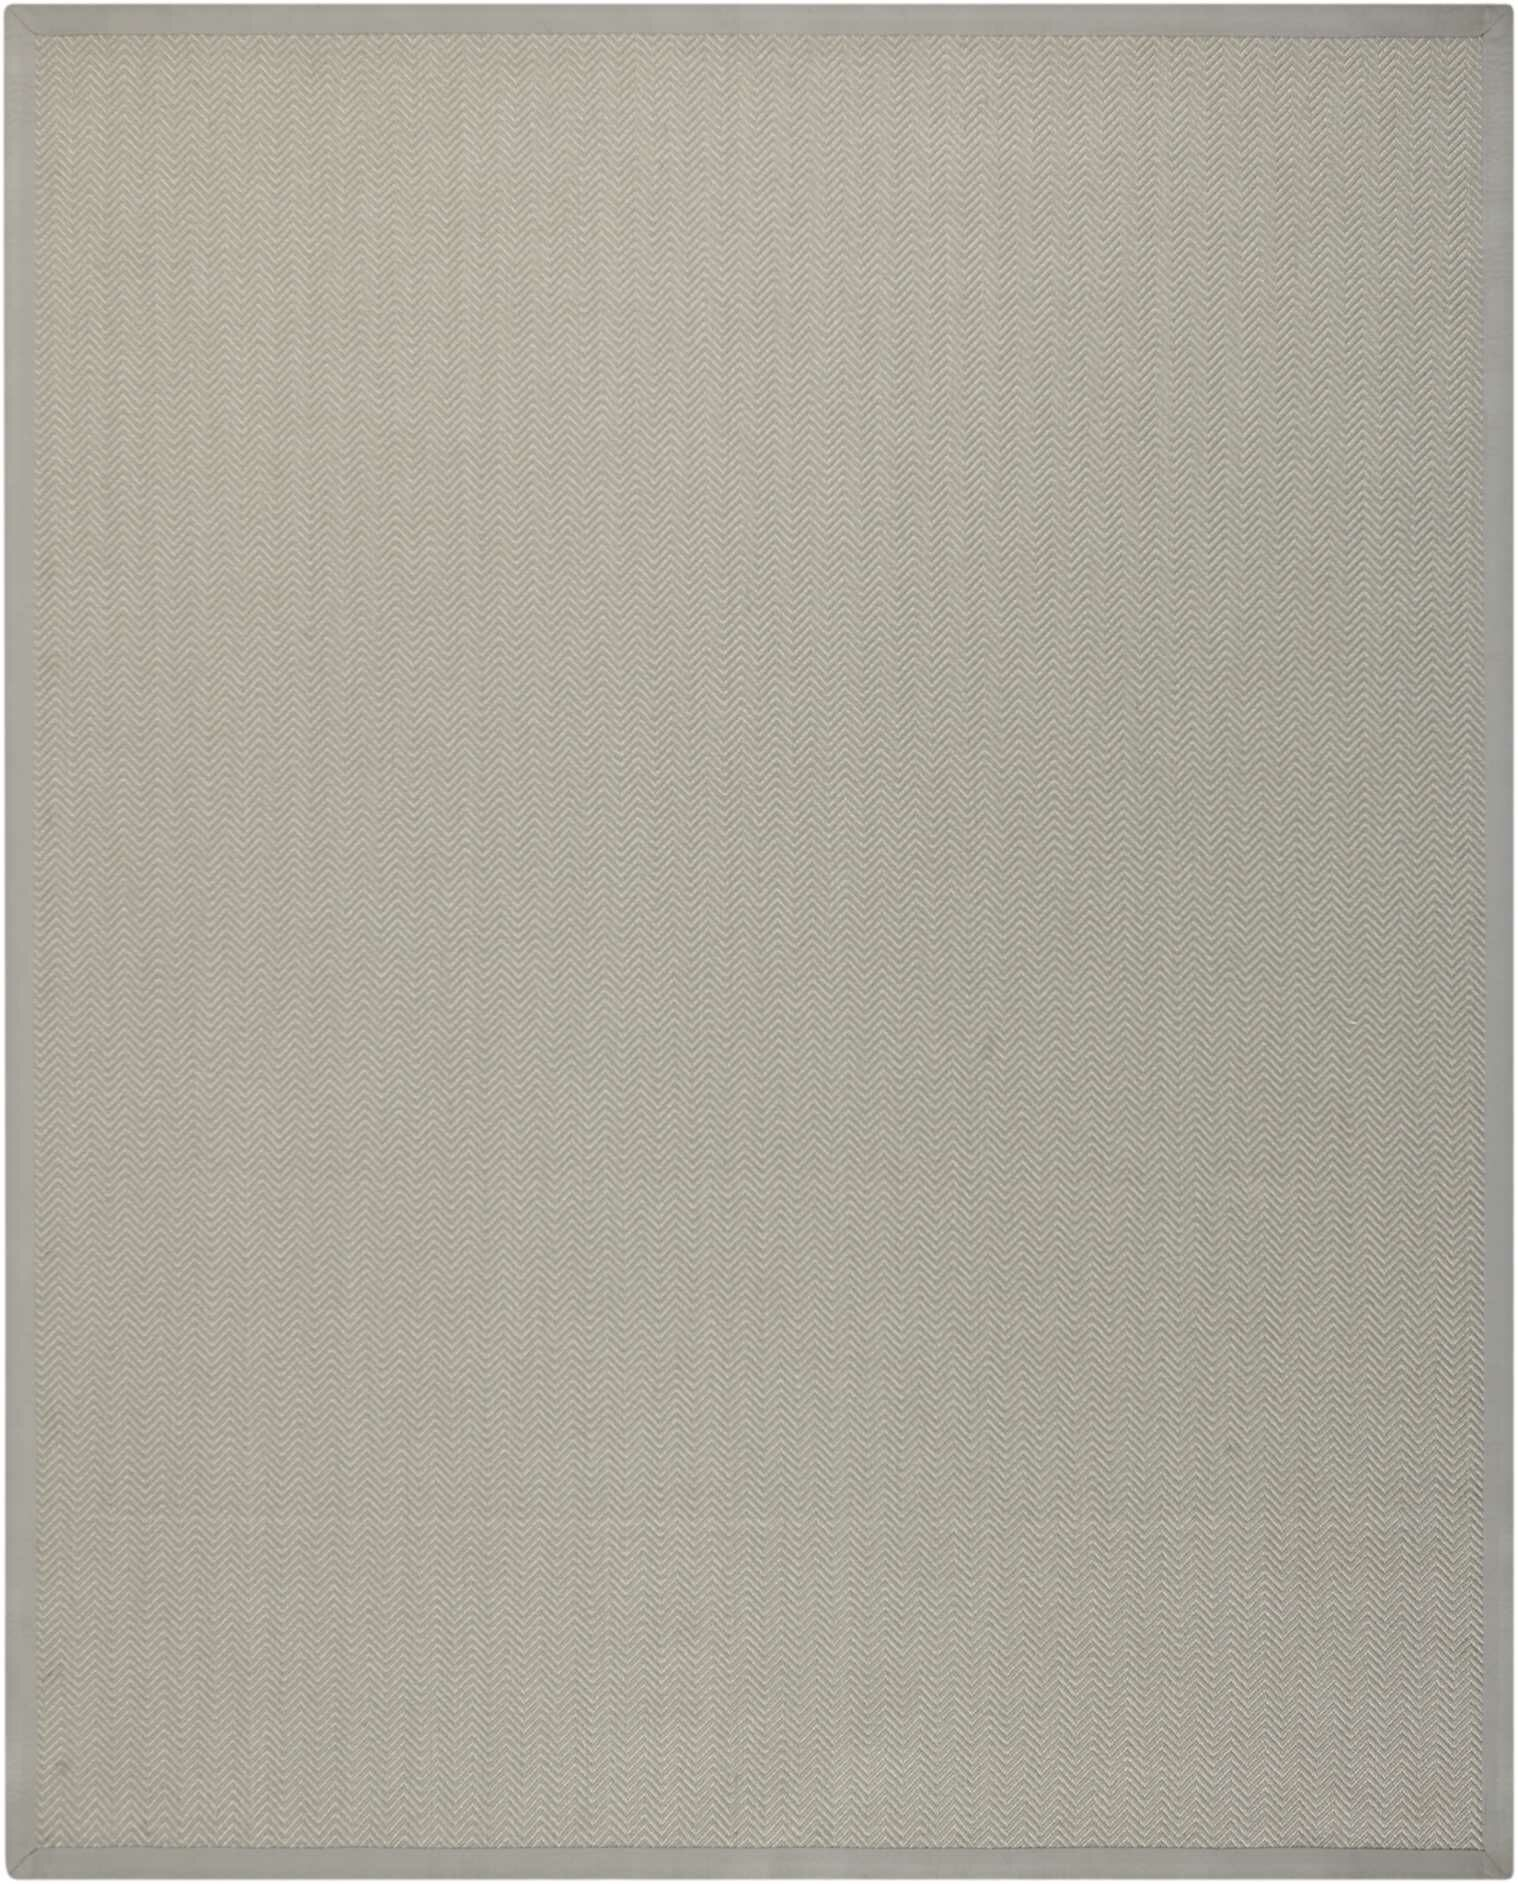 Stephenson Beige/Taupe Indoor/Outdoor Area Rug Rug Size: Rectangle 12' x 15'